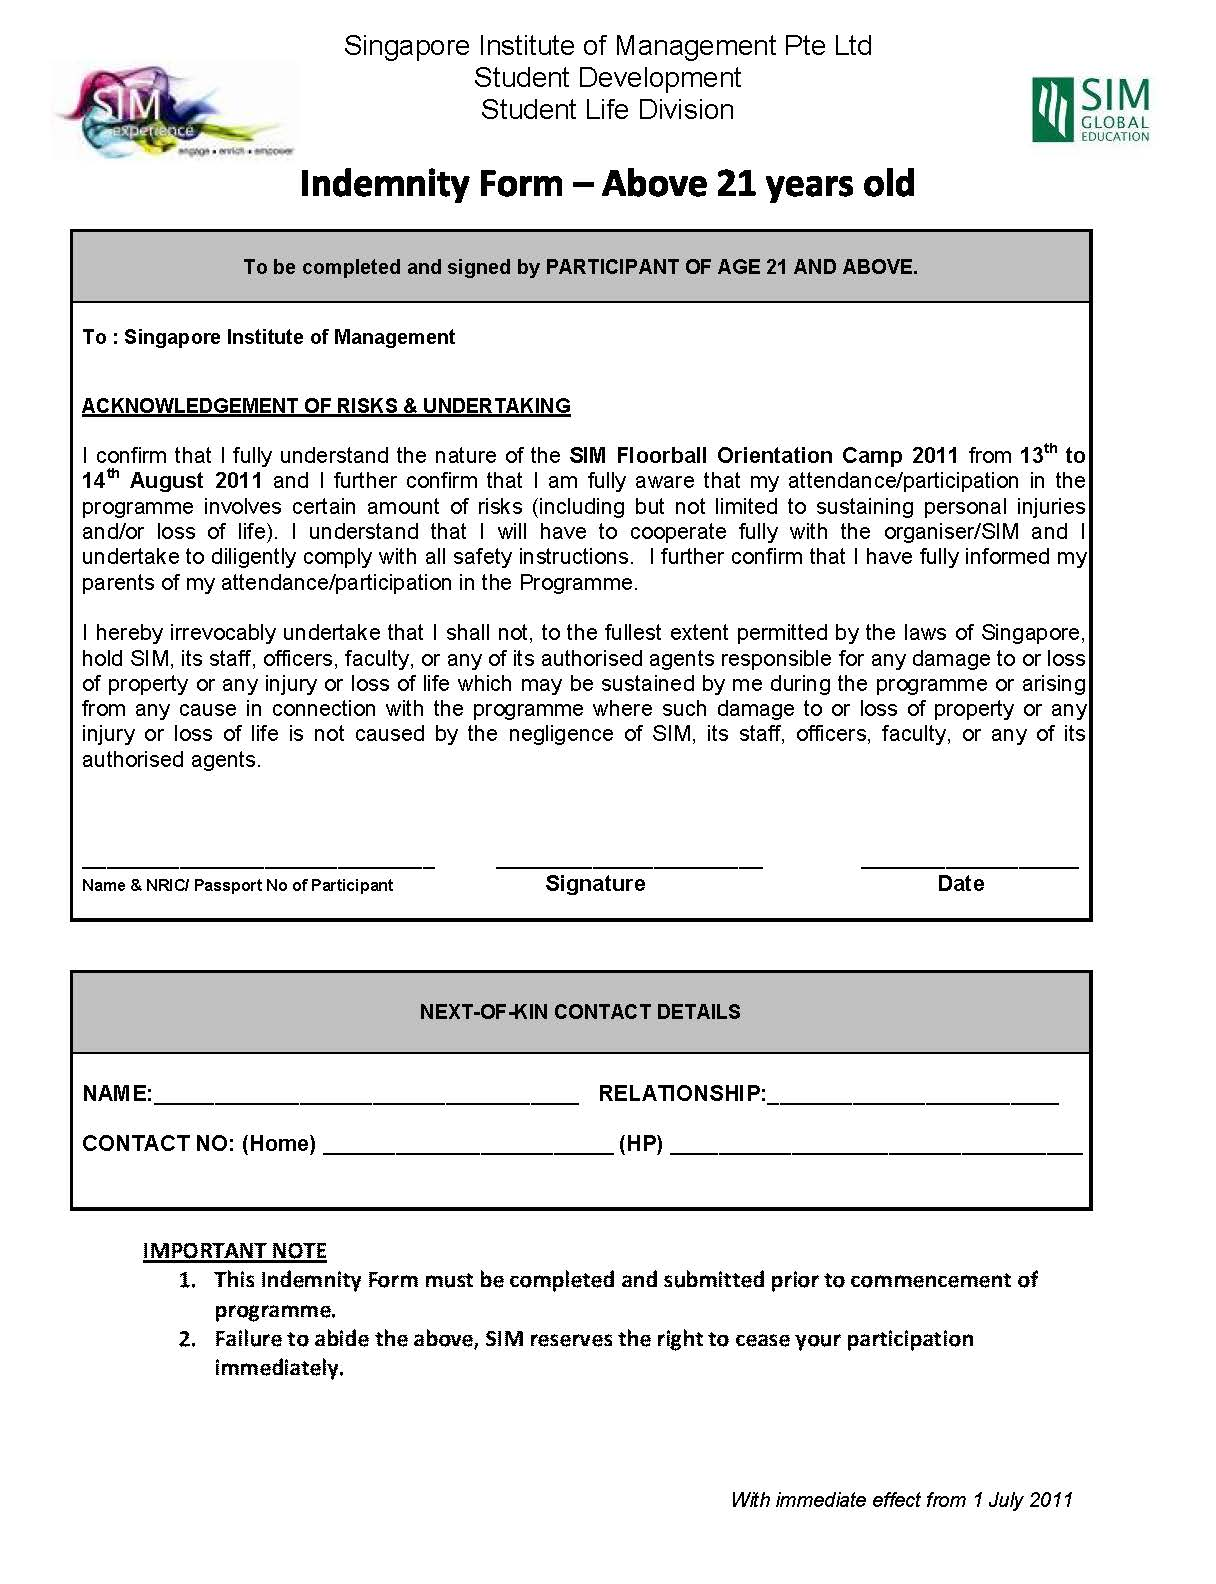 83+ Indemnity Form Template - Indemnity Form Template, Auto ...